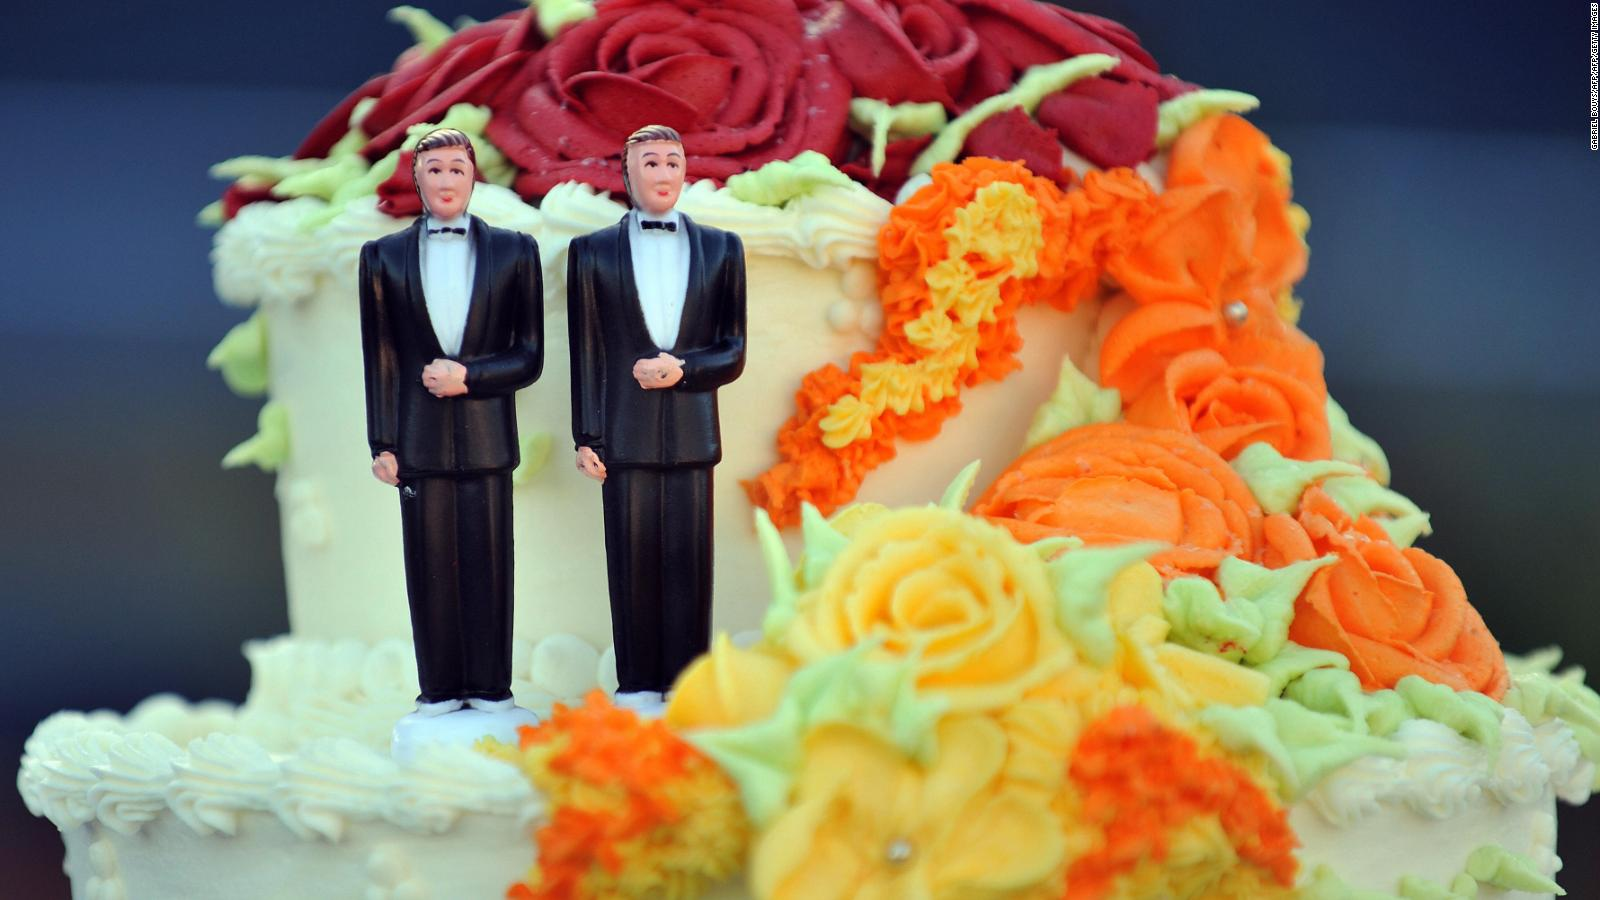 What did the gay couple want on their cake